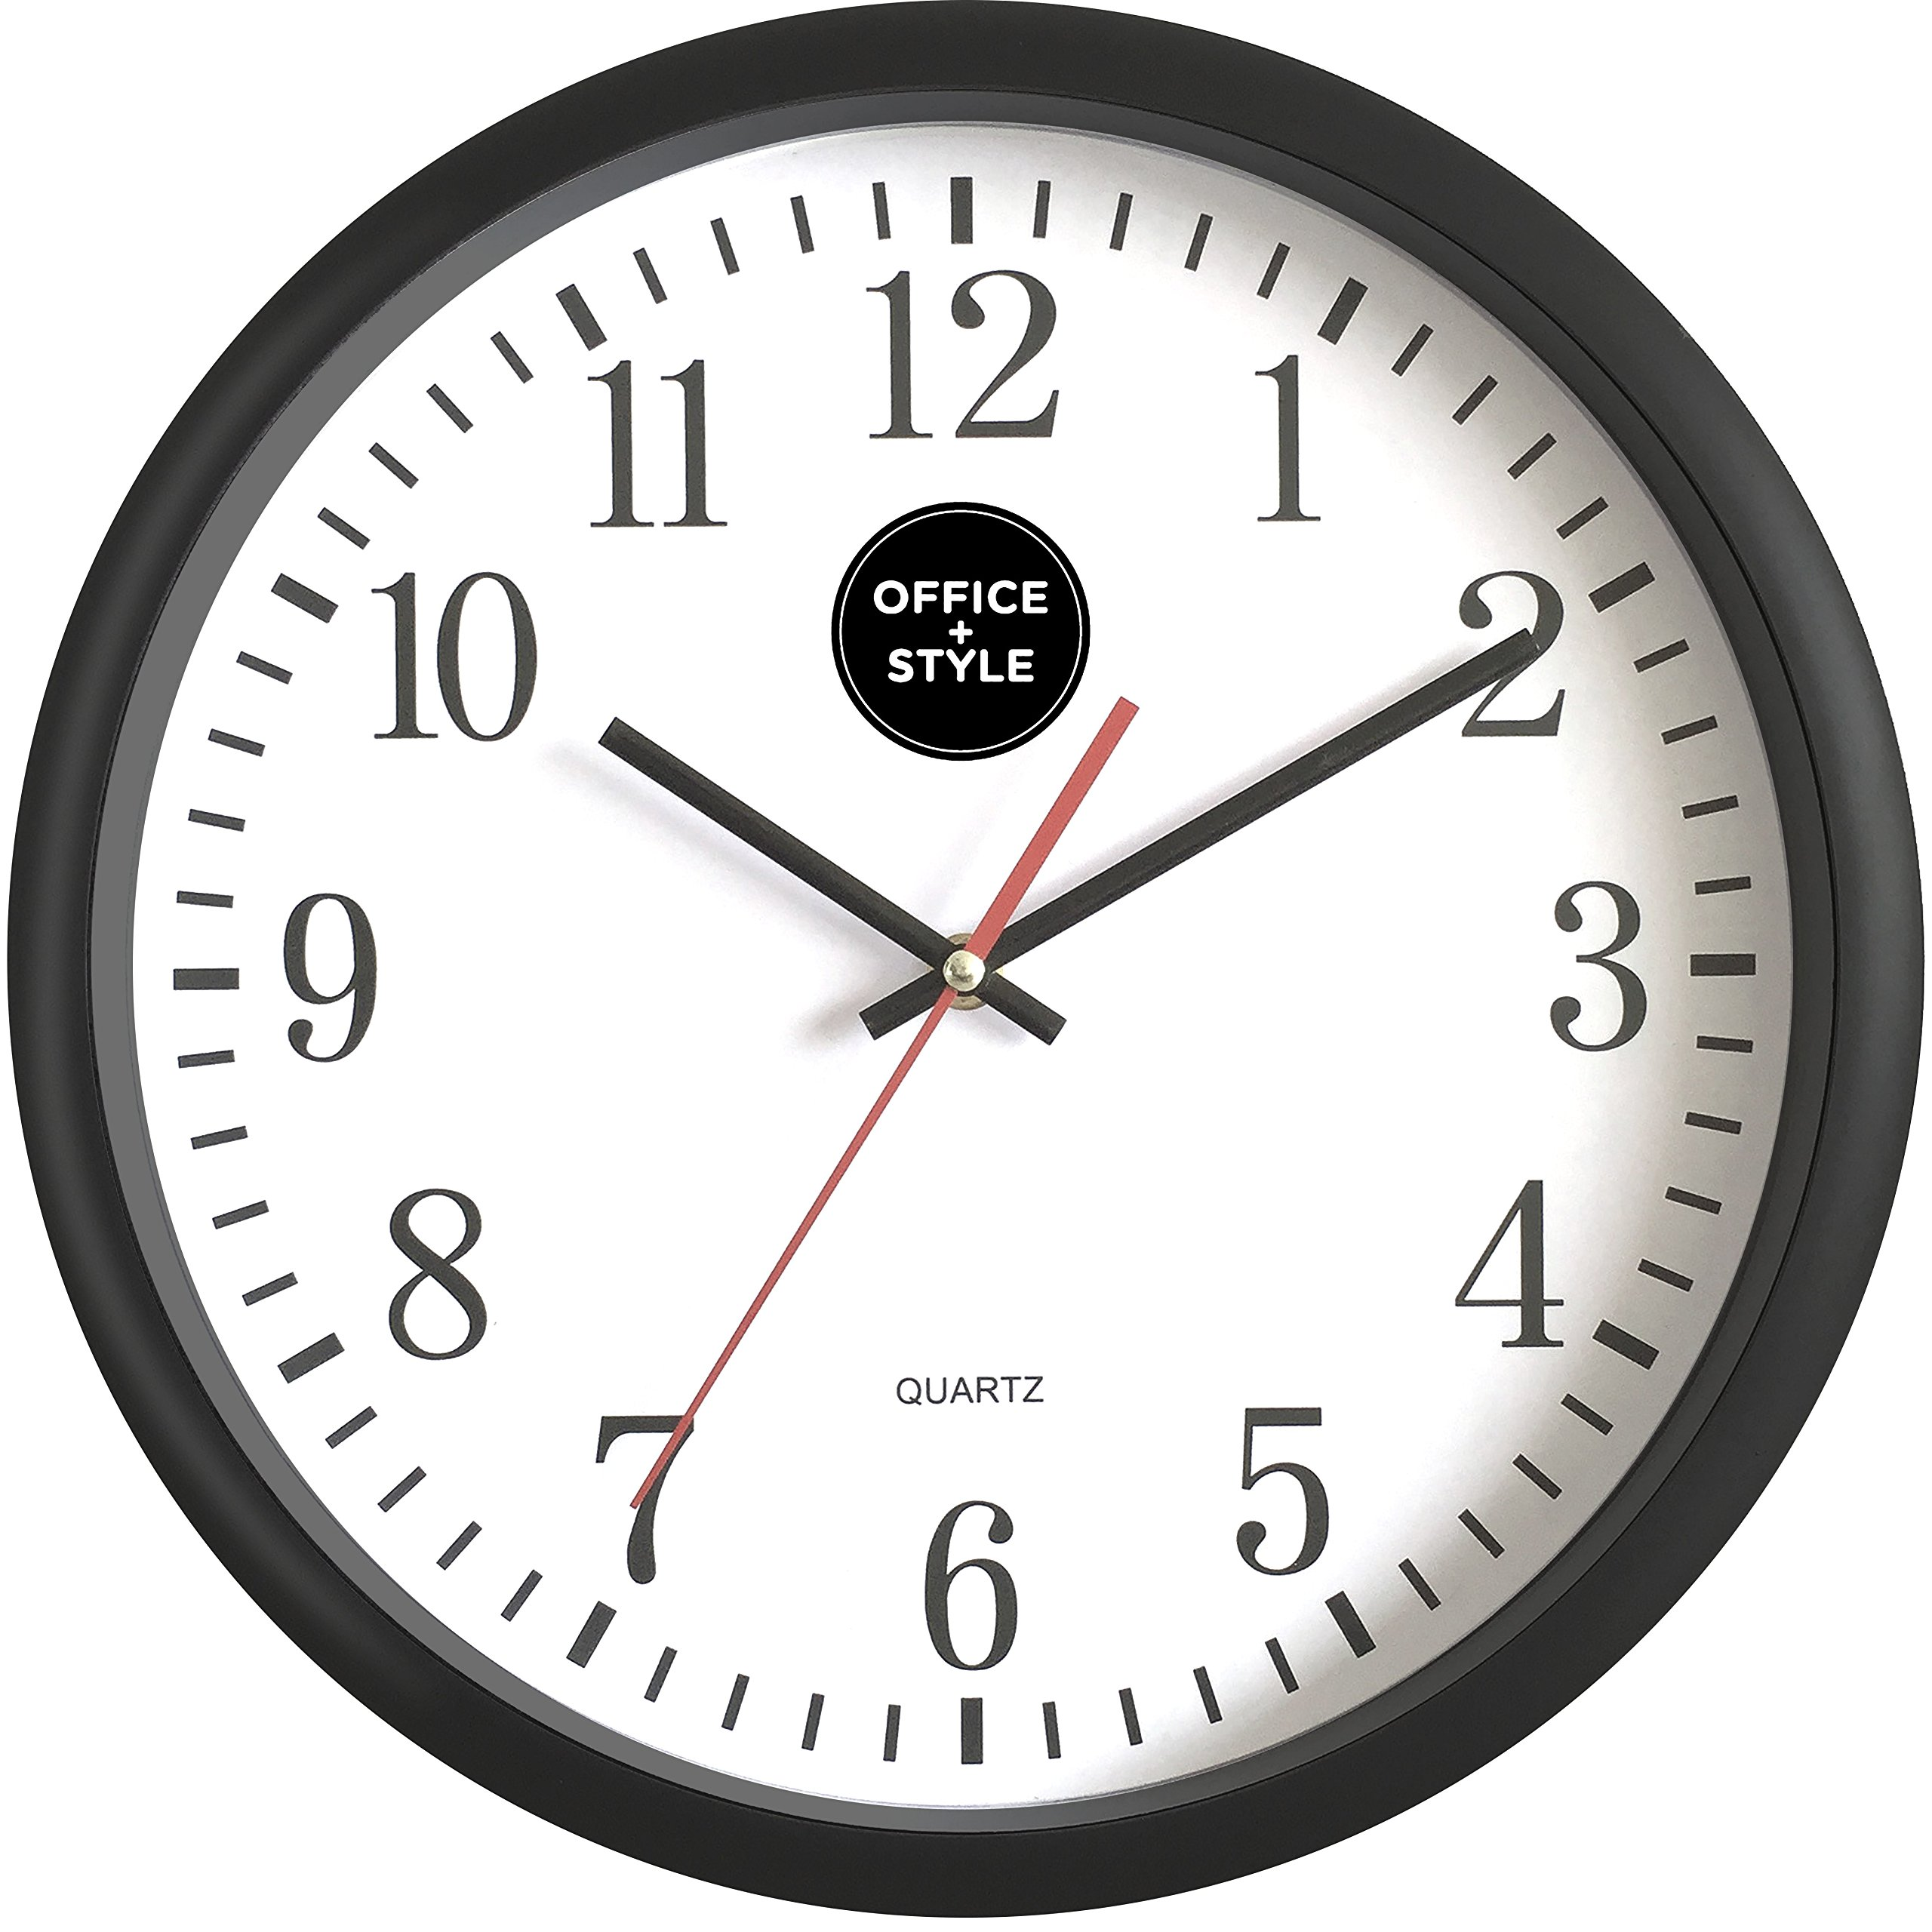 Stylish Digital Clock Analog Wall Clock With Anti Scratch Plexi Glass Cover